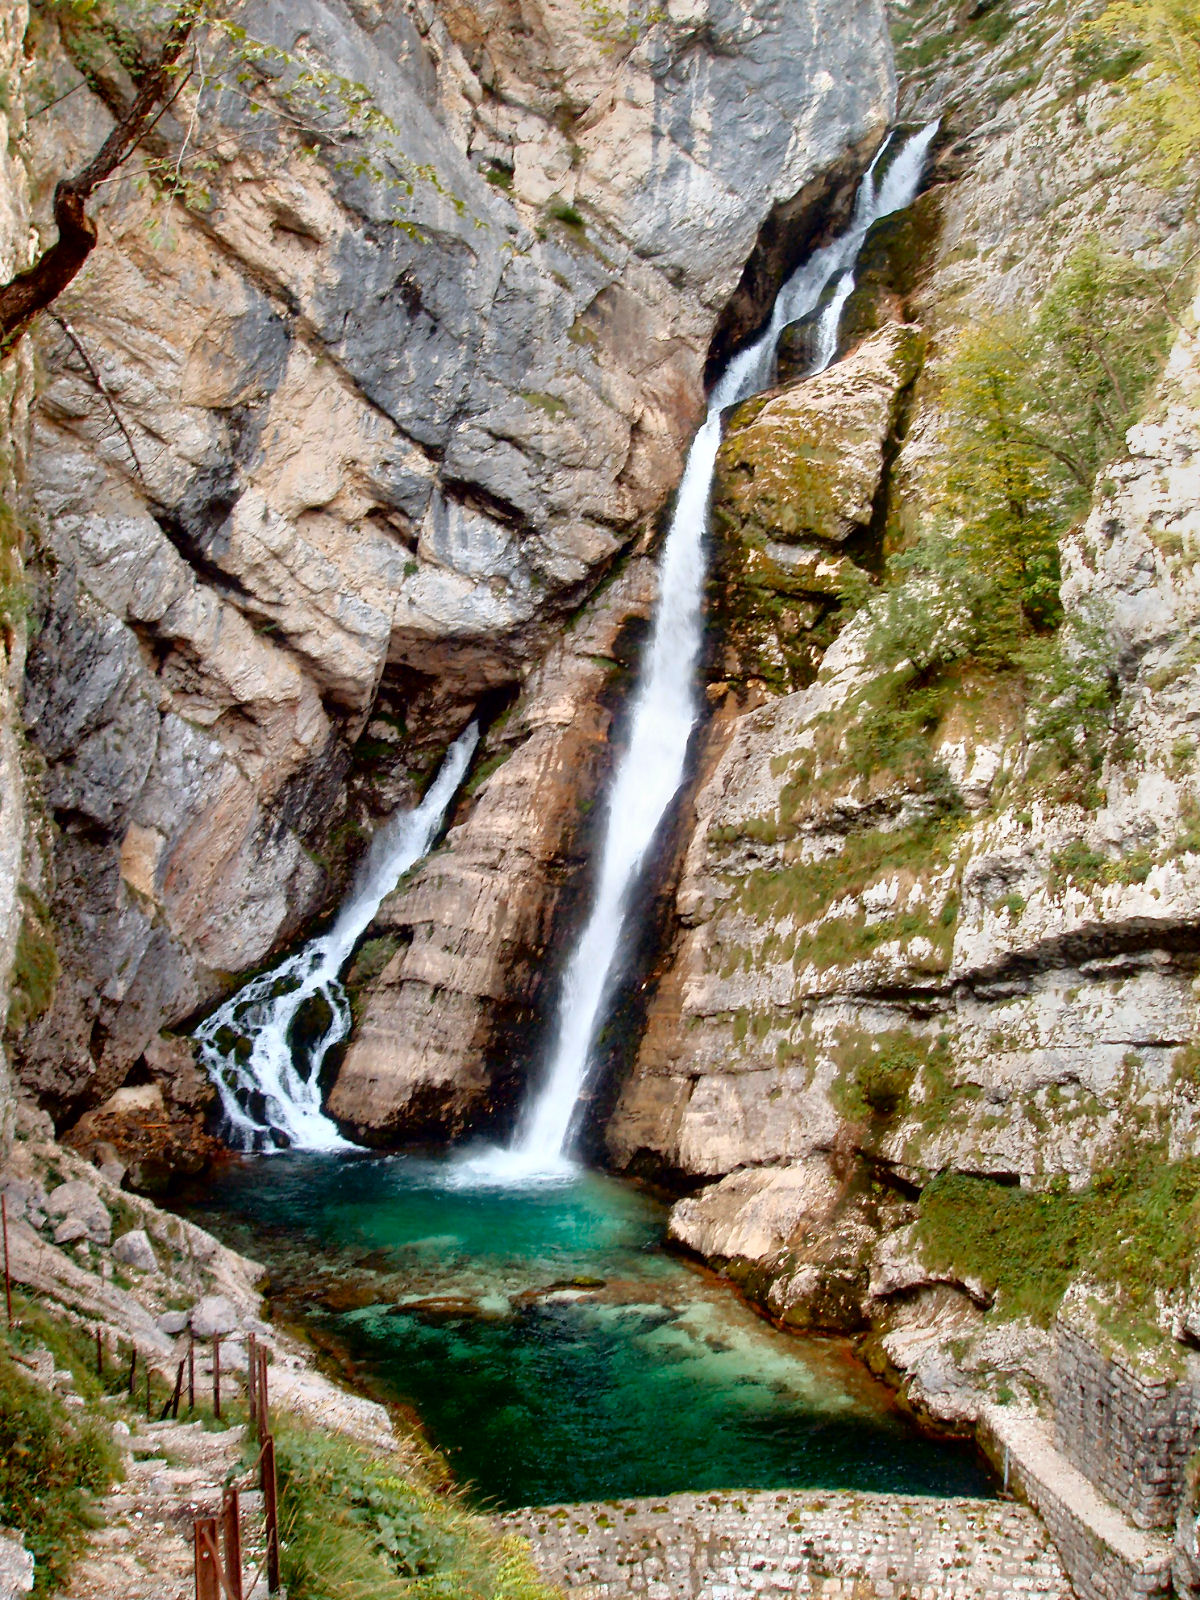 Waterfall Savica with an emerald green pool at its bottom